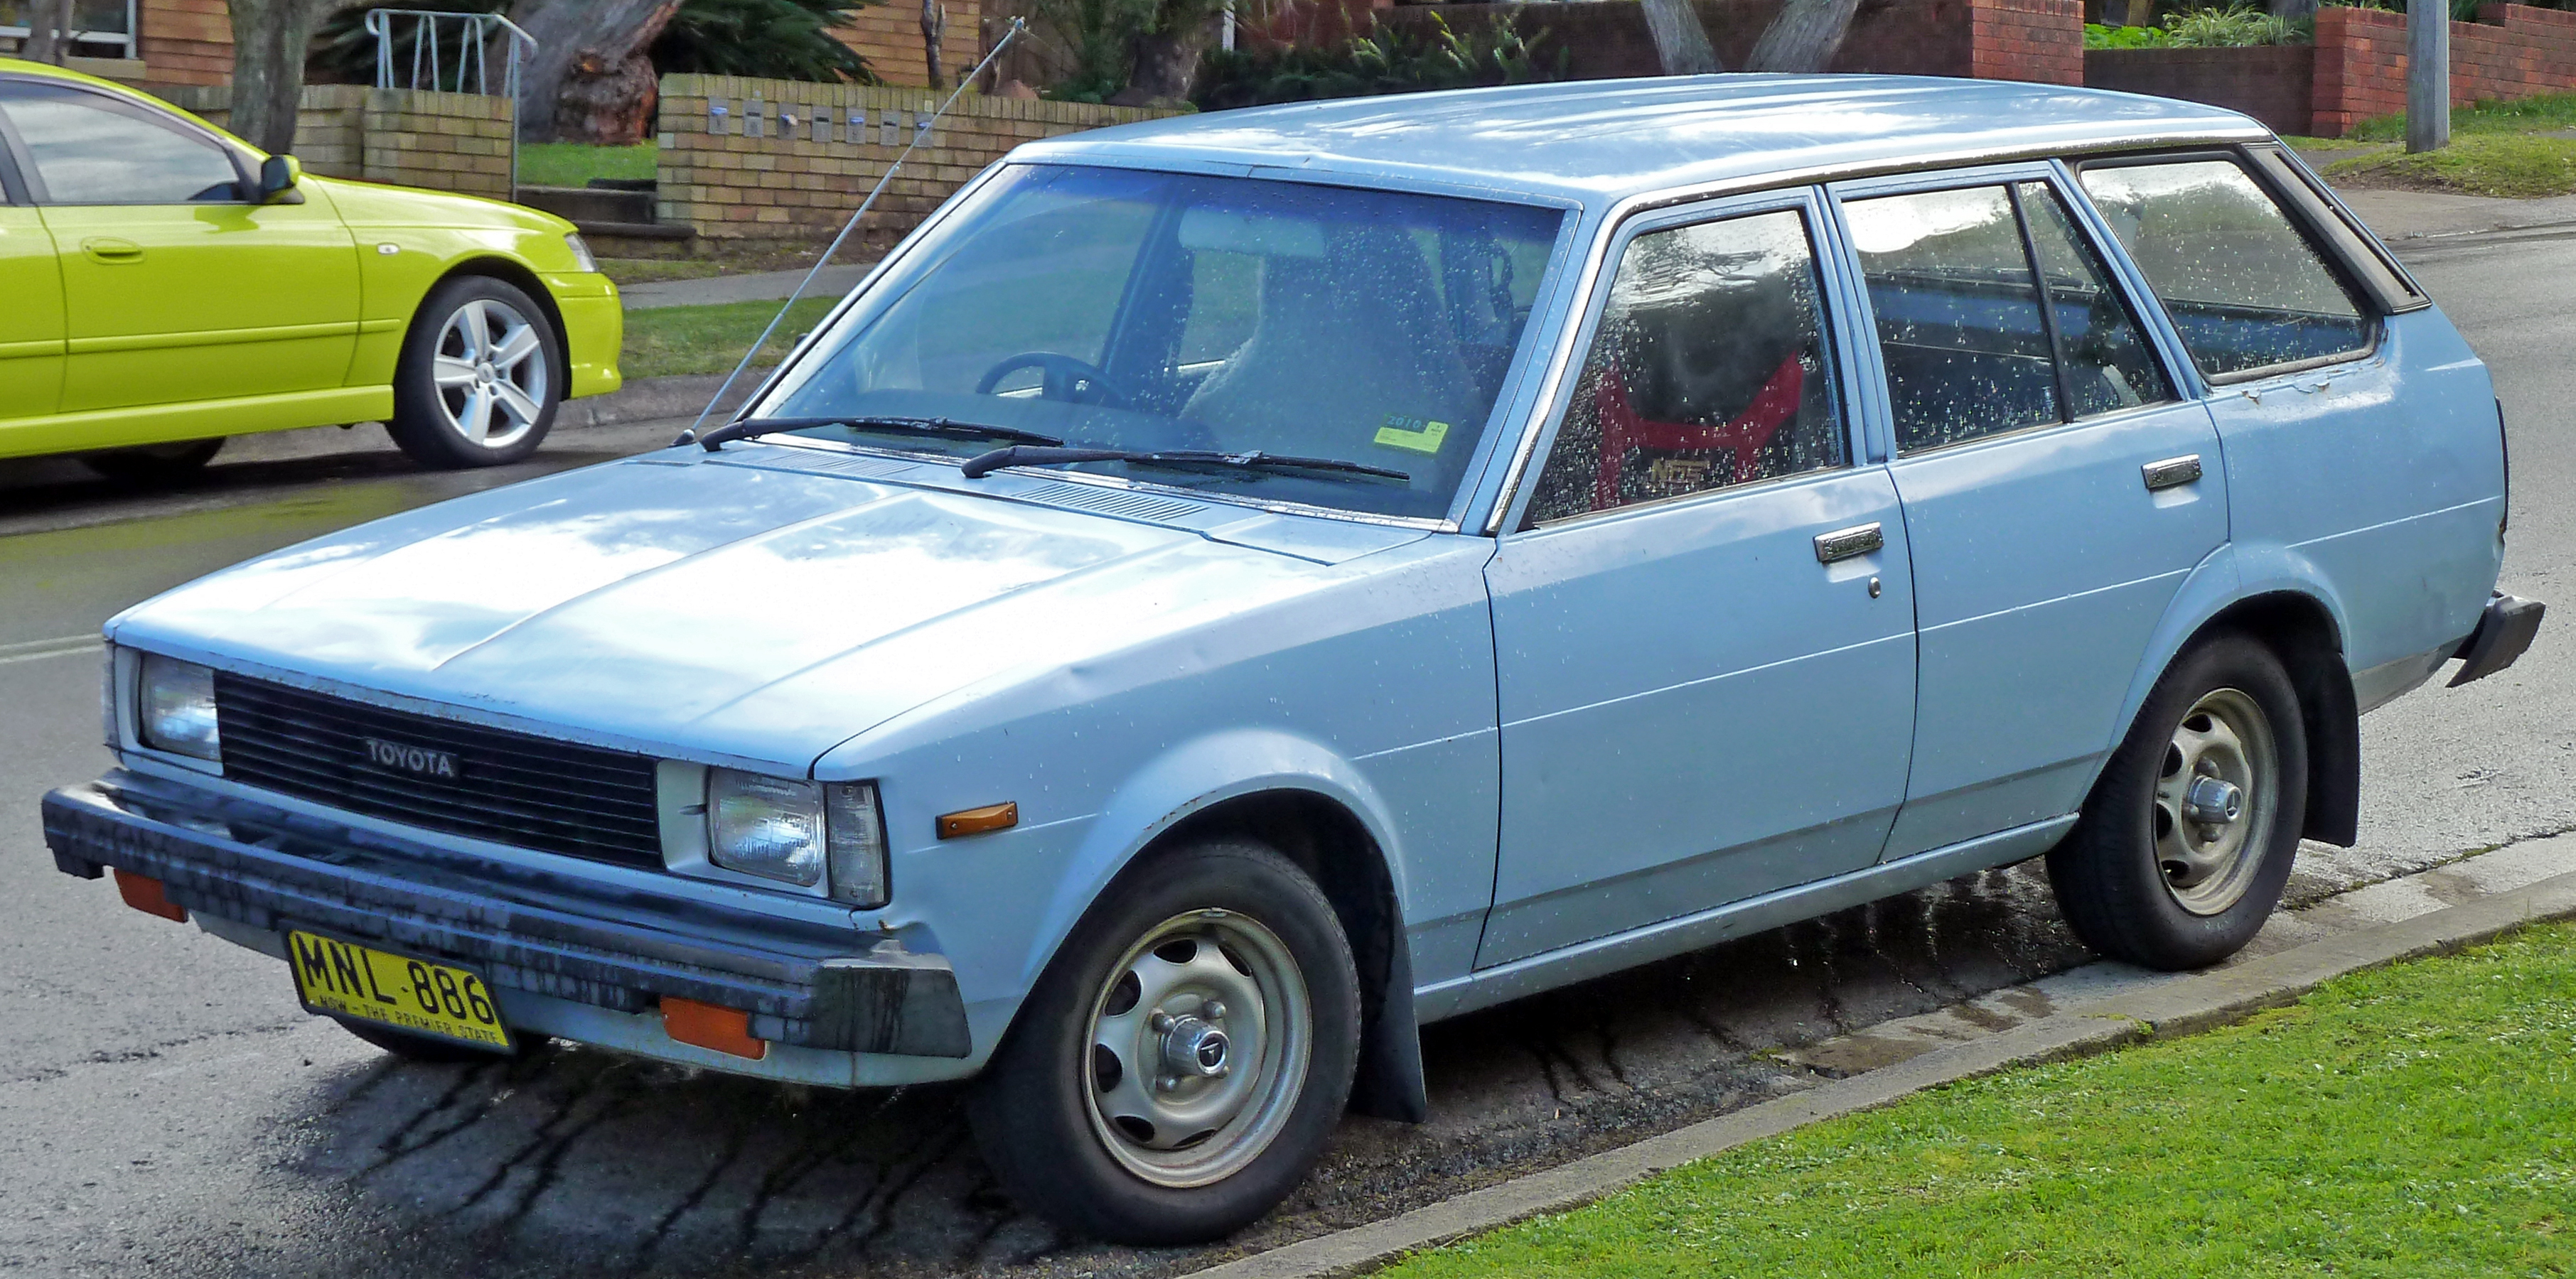 Captivating File:1980 1983 Toyota Corolla (KE70) Station Wagon 01